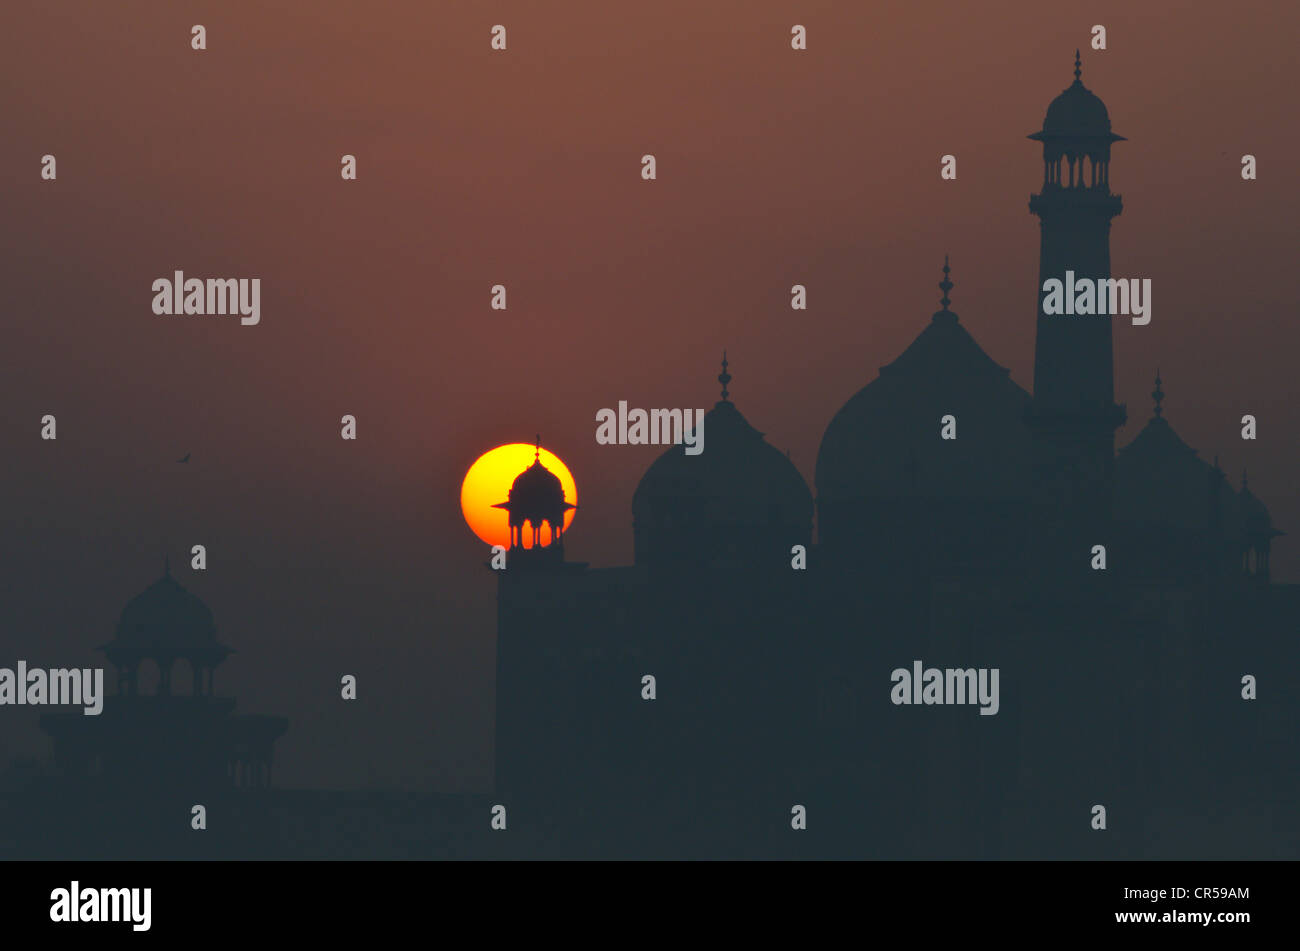 Taj Mahal, UNESCO Worl Heritage Site, against sunrise, Agra, Uttar Pradesh, India, Asia - Stock Image